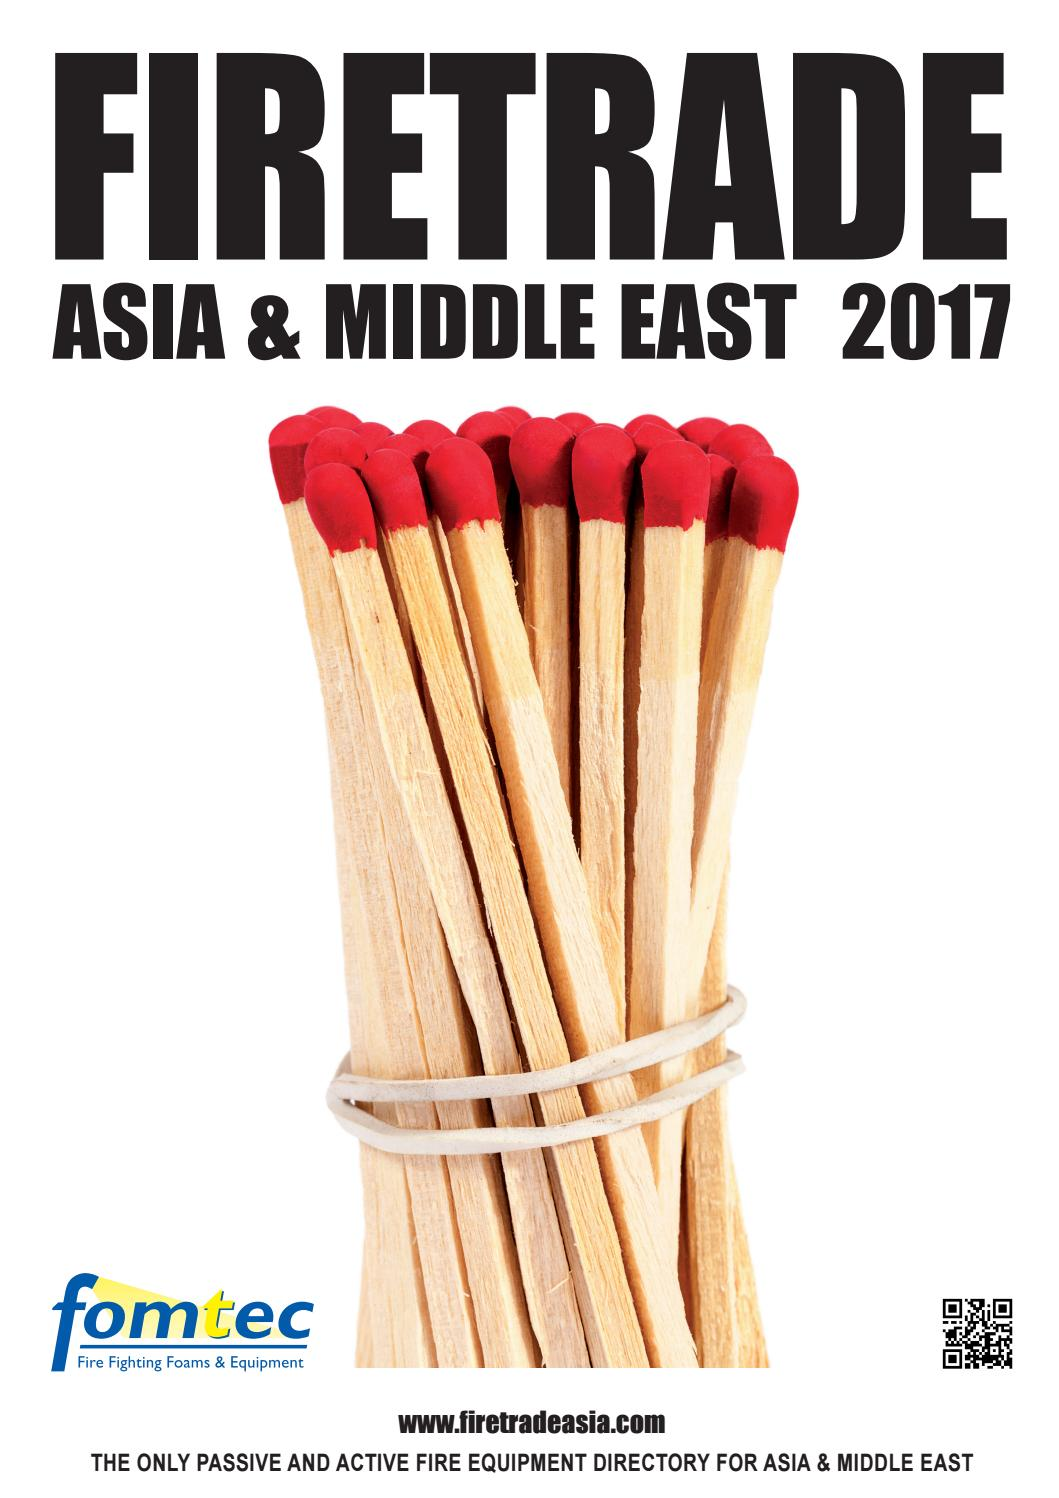 Firetrade Asia Middle East 2017 By Hemming Group Issuu Austin Flats Maxime White Putih 36